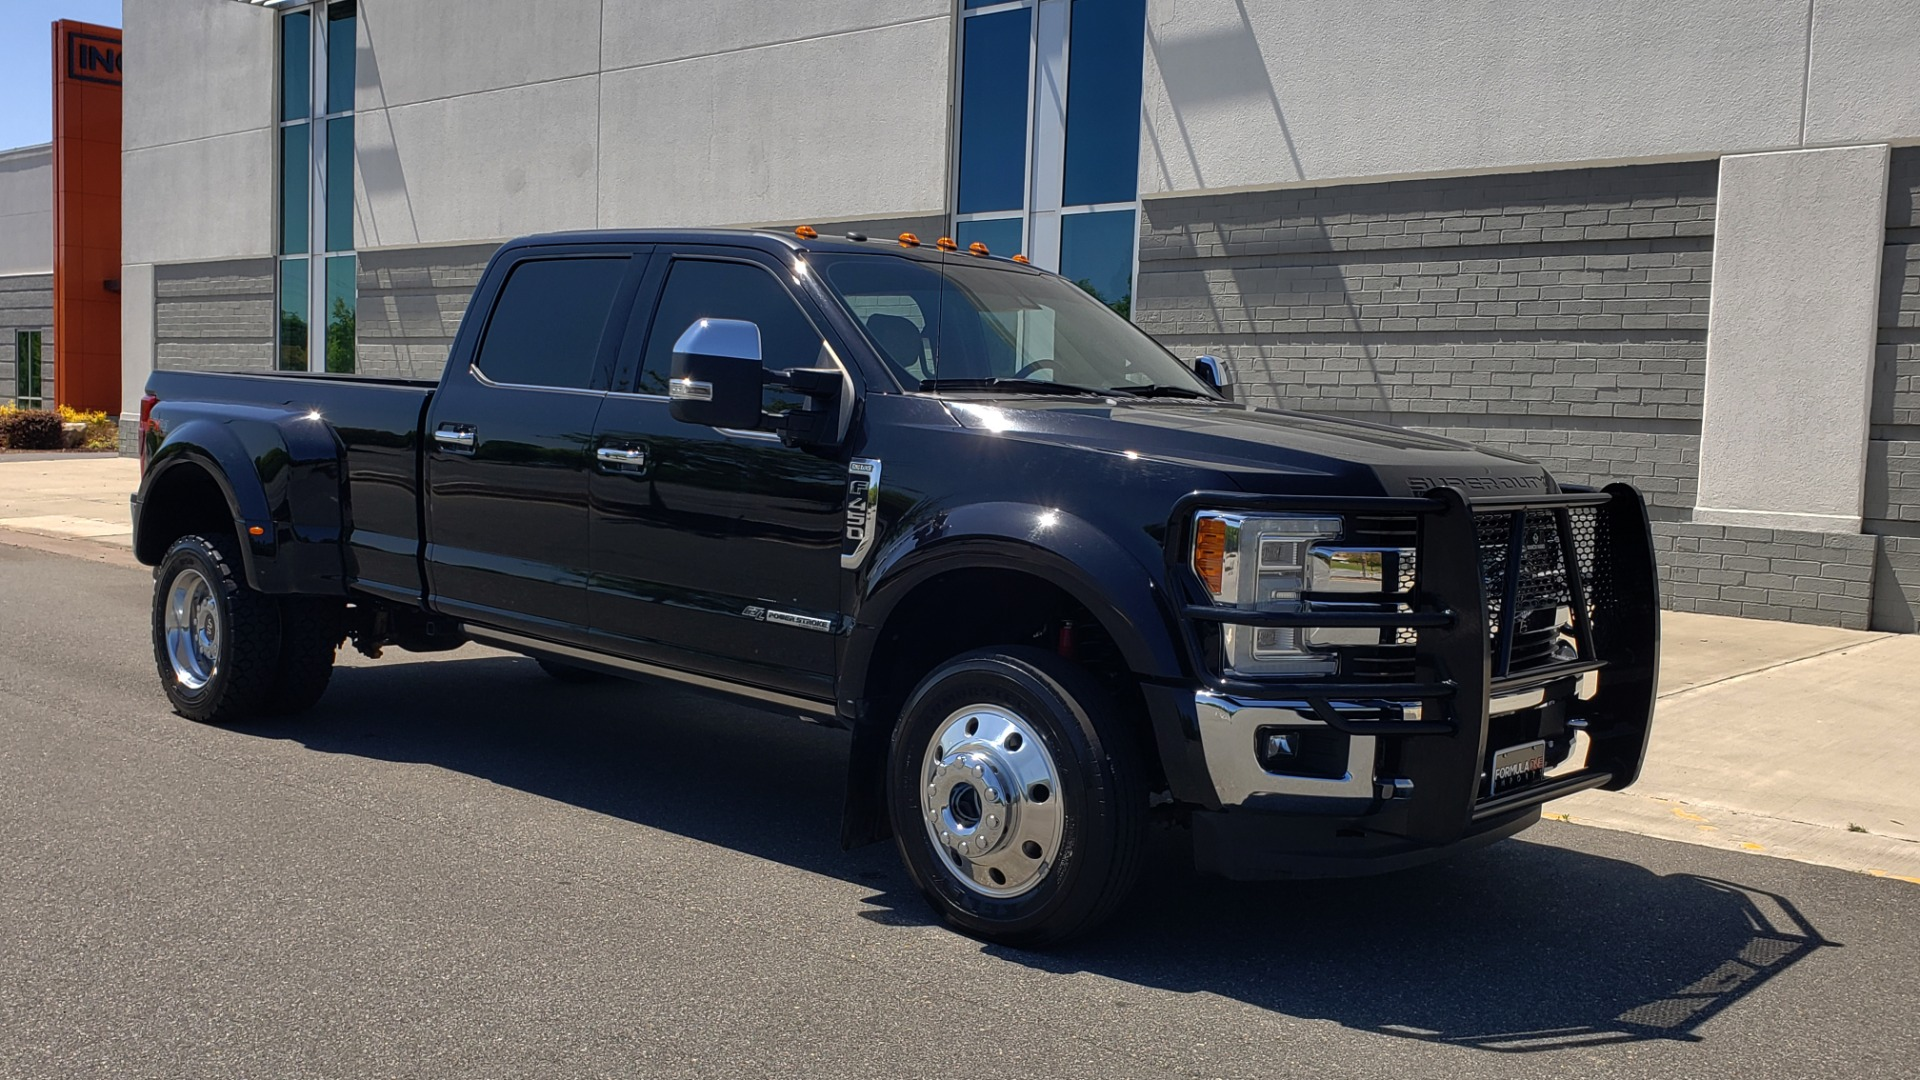 Used 2017 Ford SUPER DUTY F-450 DRW KING RANCH 4X4 / 176IN WB / 6.7L POWER-STROKE / LOADED for sale Sold at Formula Imports in Charlotte NC 28227 13